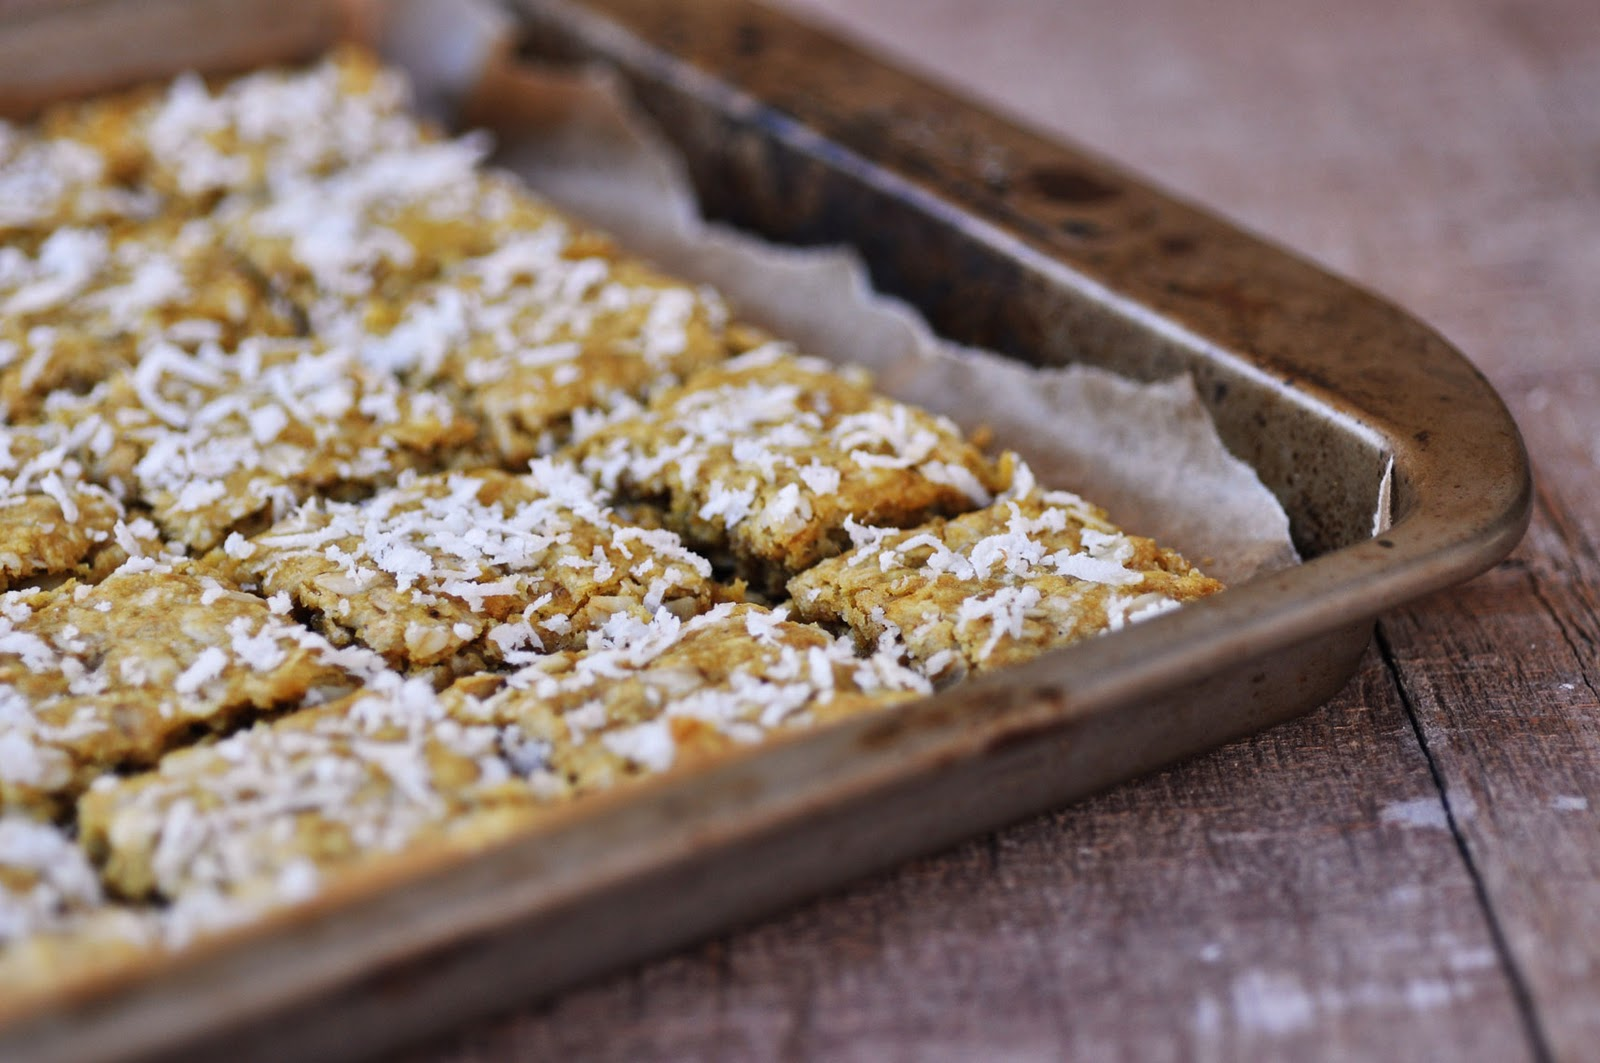 Anja's Food 4 Thought: Coconut Almond Oat Crunchies